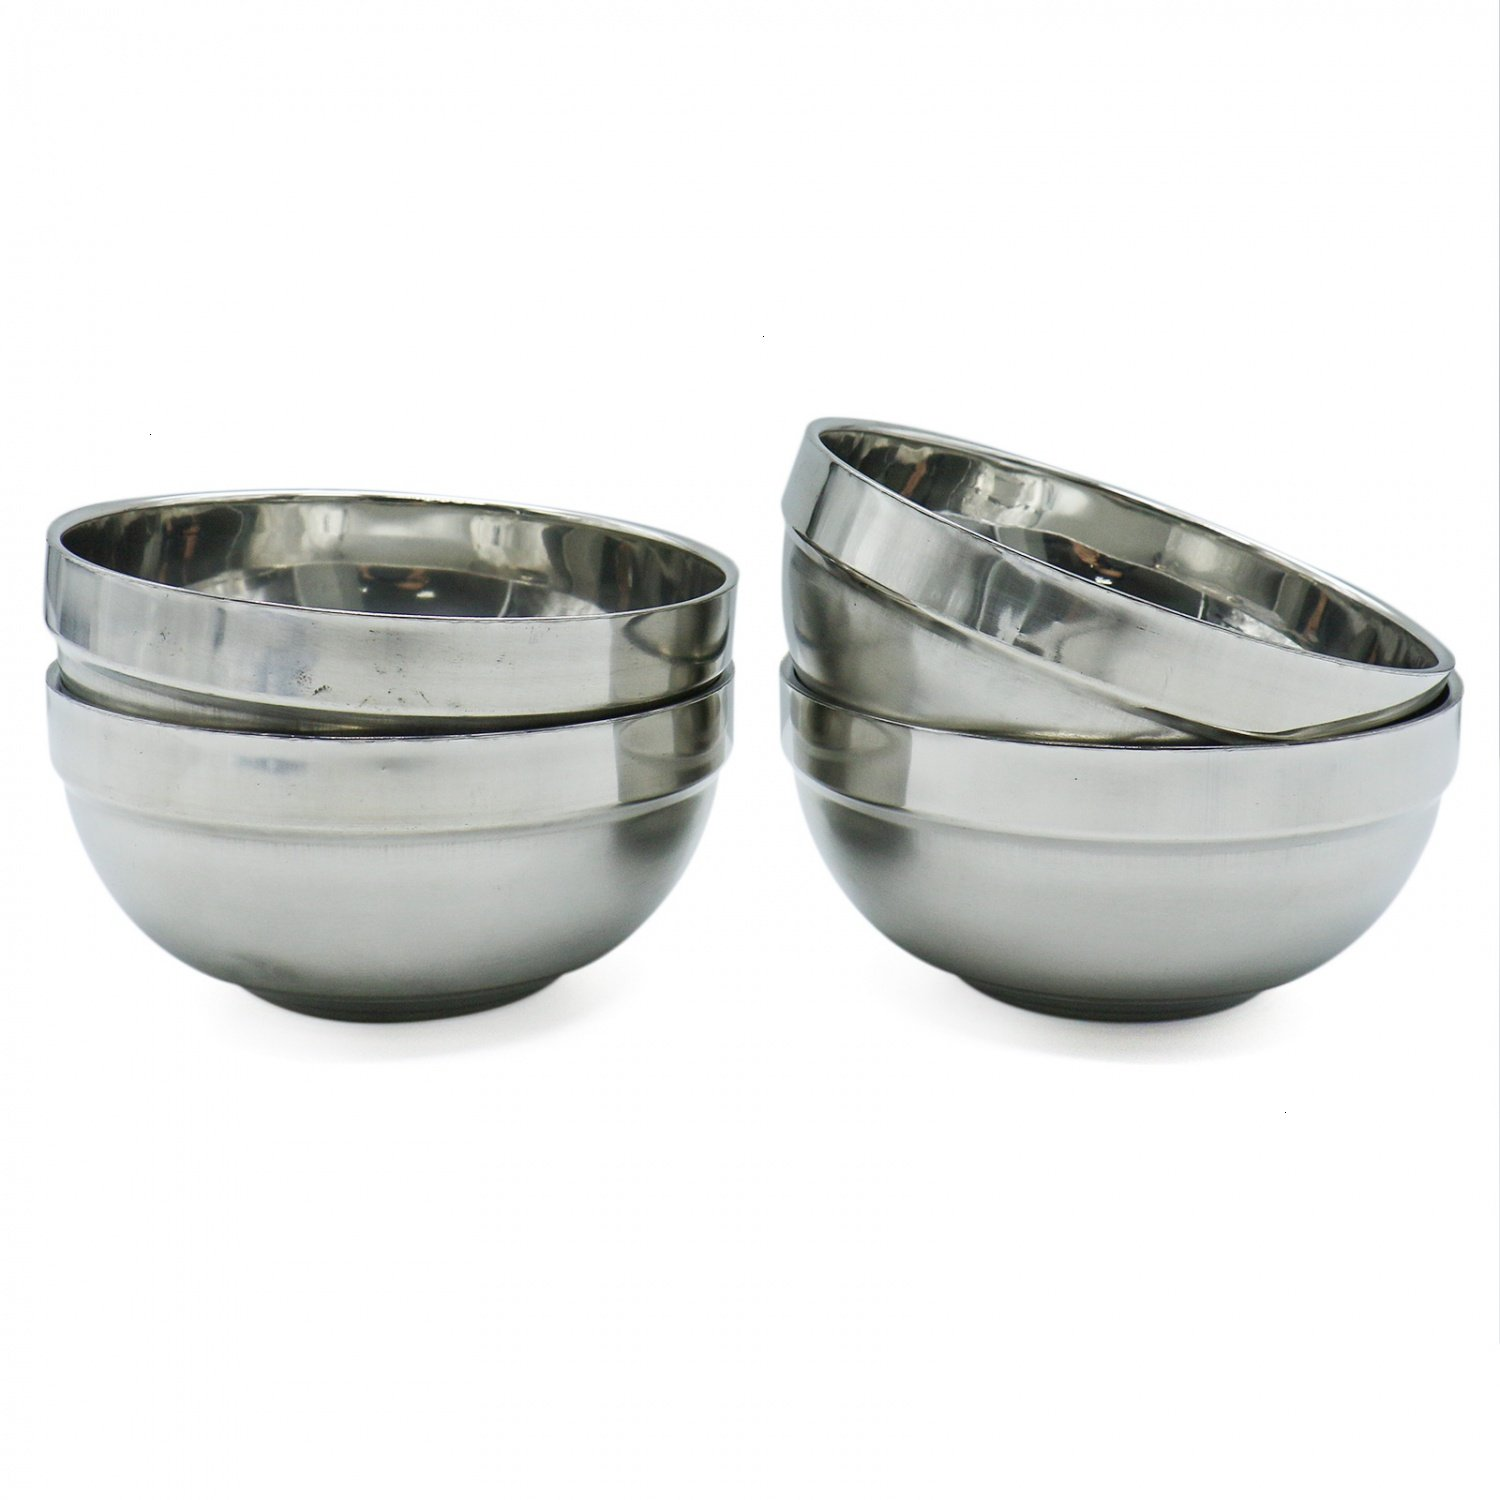 HUELE Mirror Pollished Double-Wall Insulated Stainless Steel Soup Bowl Kitchen Series Dessert Bowls for Cereal Soup Rice & Snacks, Set of 4